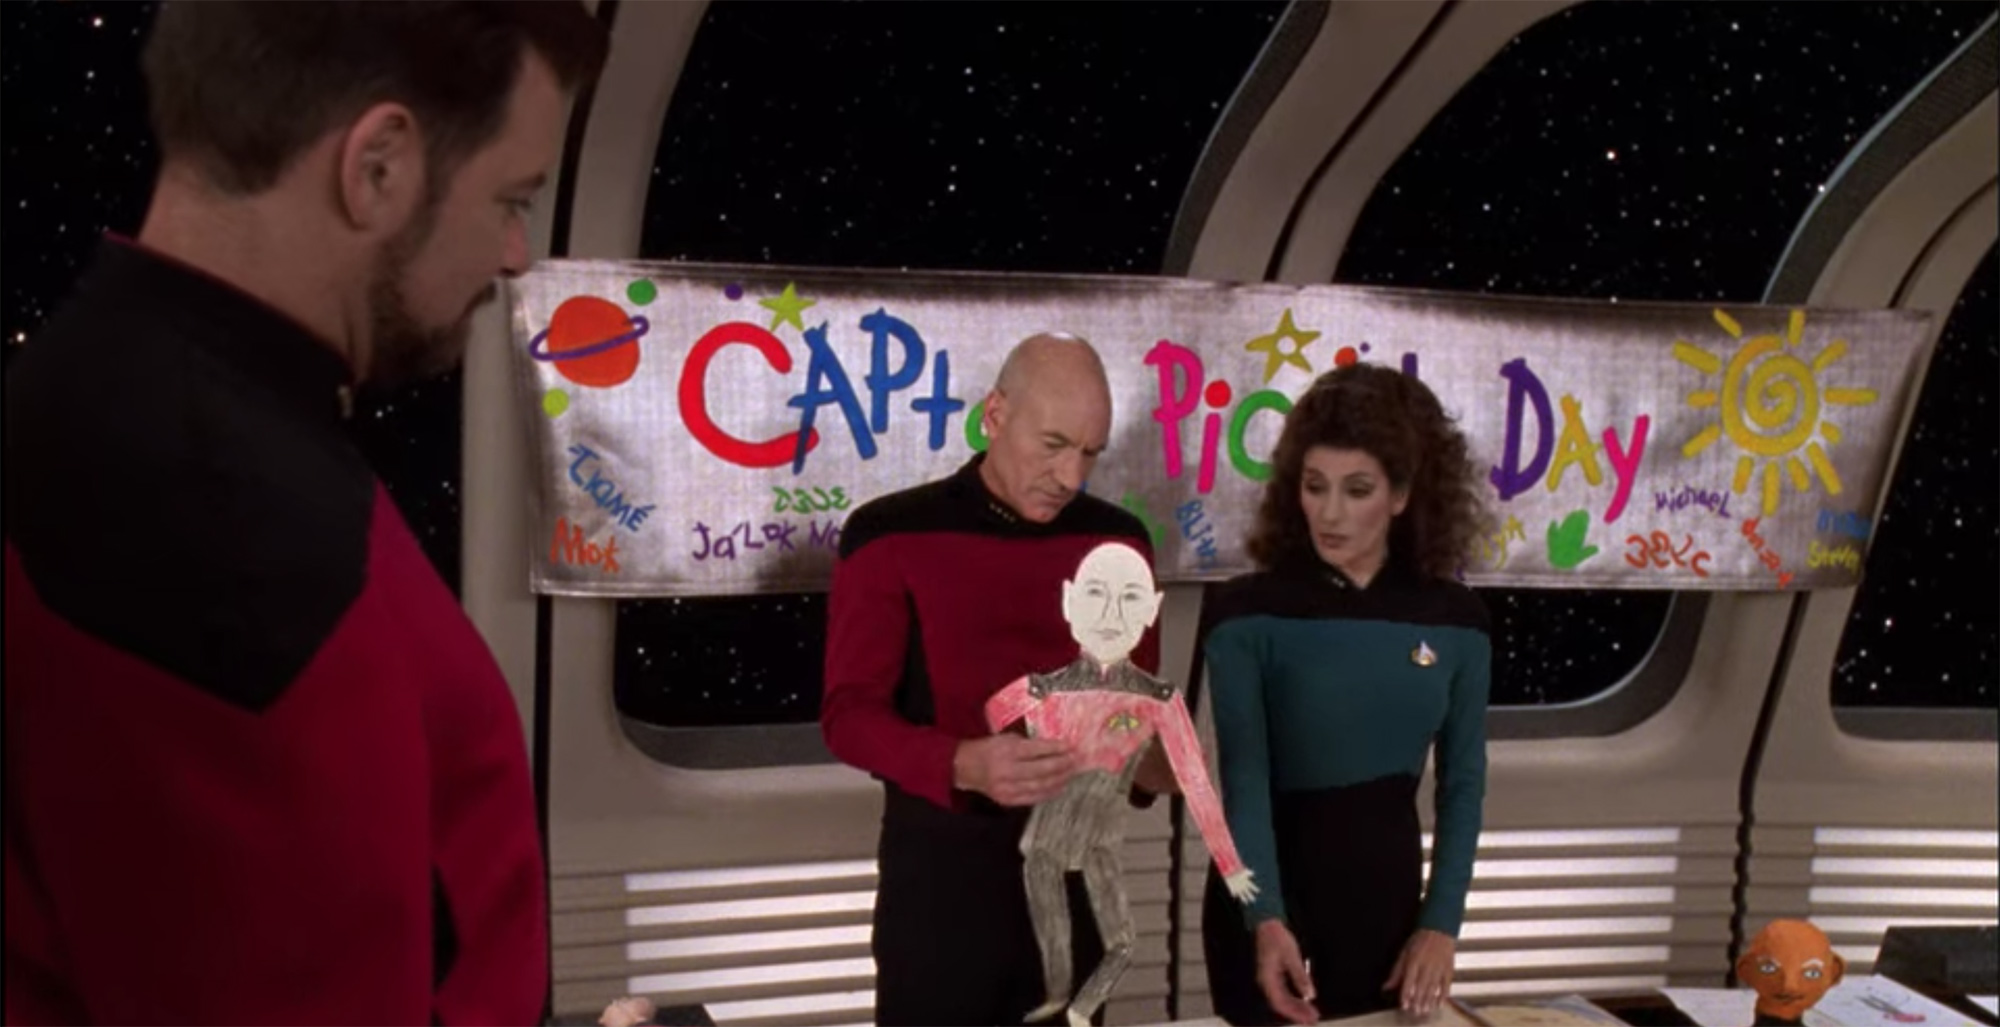 Picard Day Banner